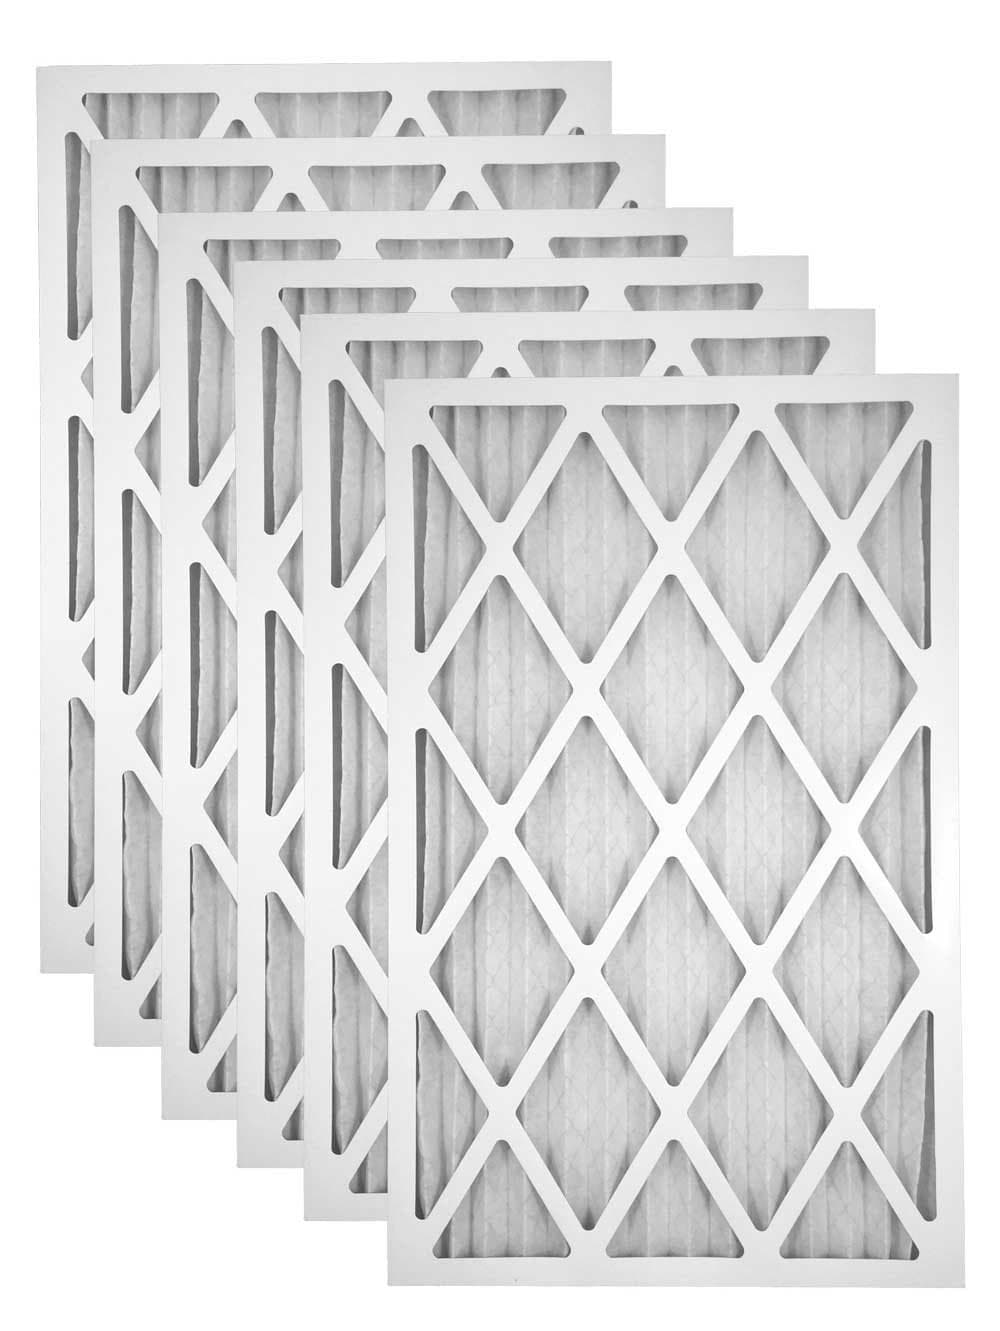 15x25x1 Merv 13 Pleated AC Furnace Filter - Case of 6